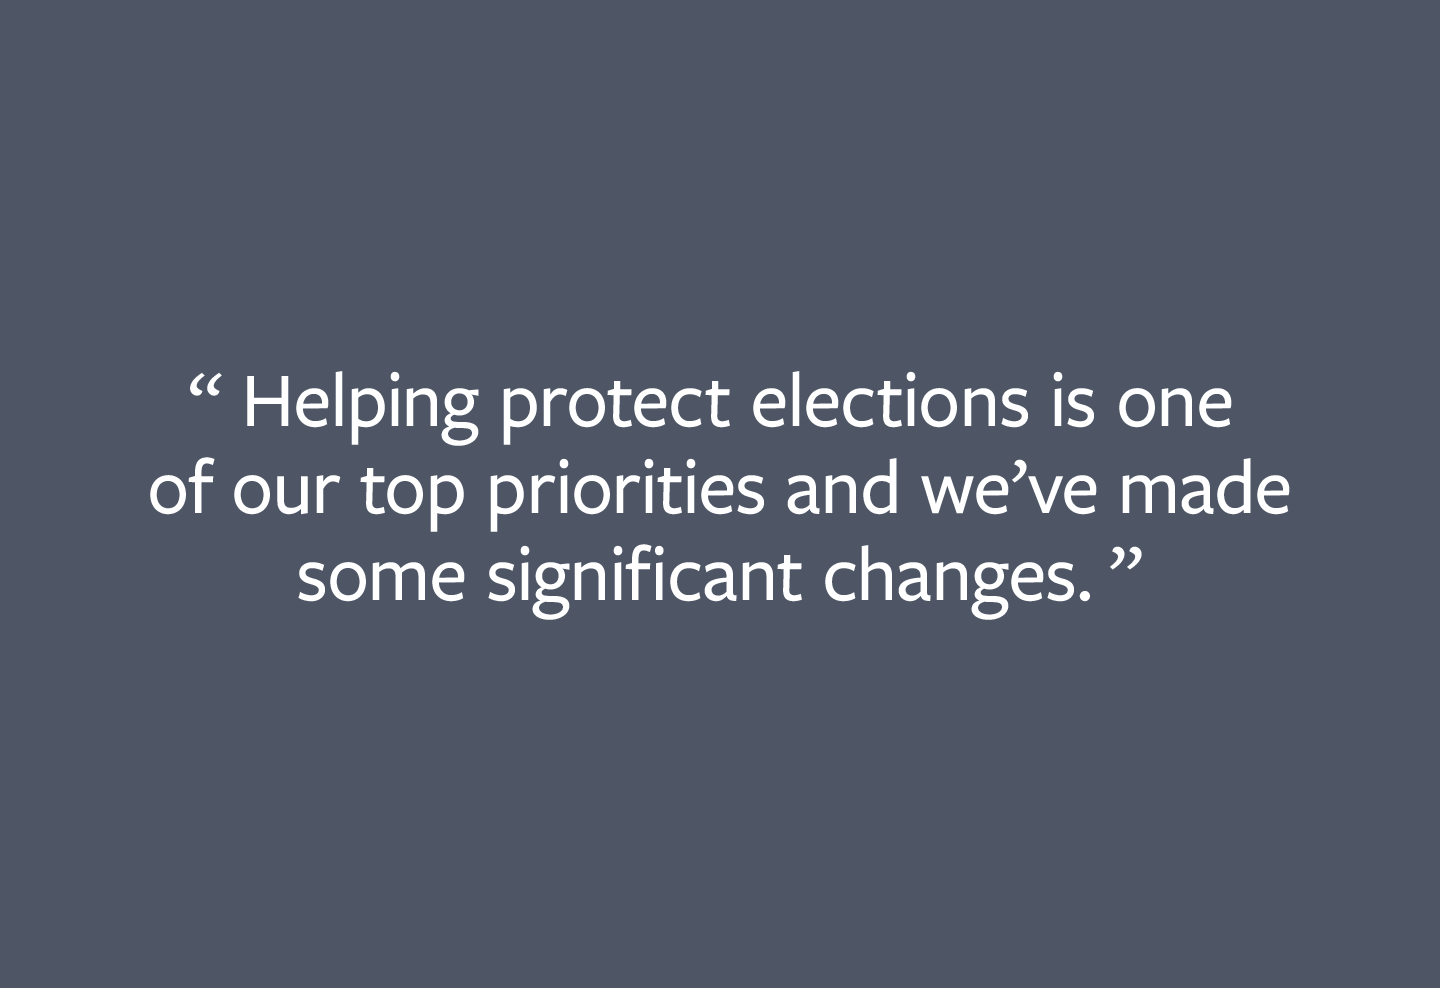 Helping protect elections is one of our top priorities